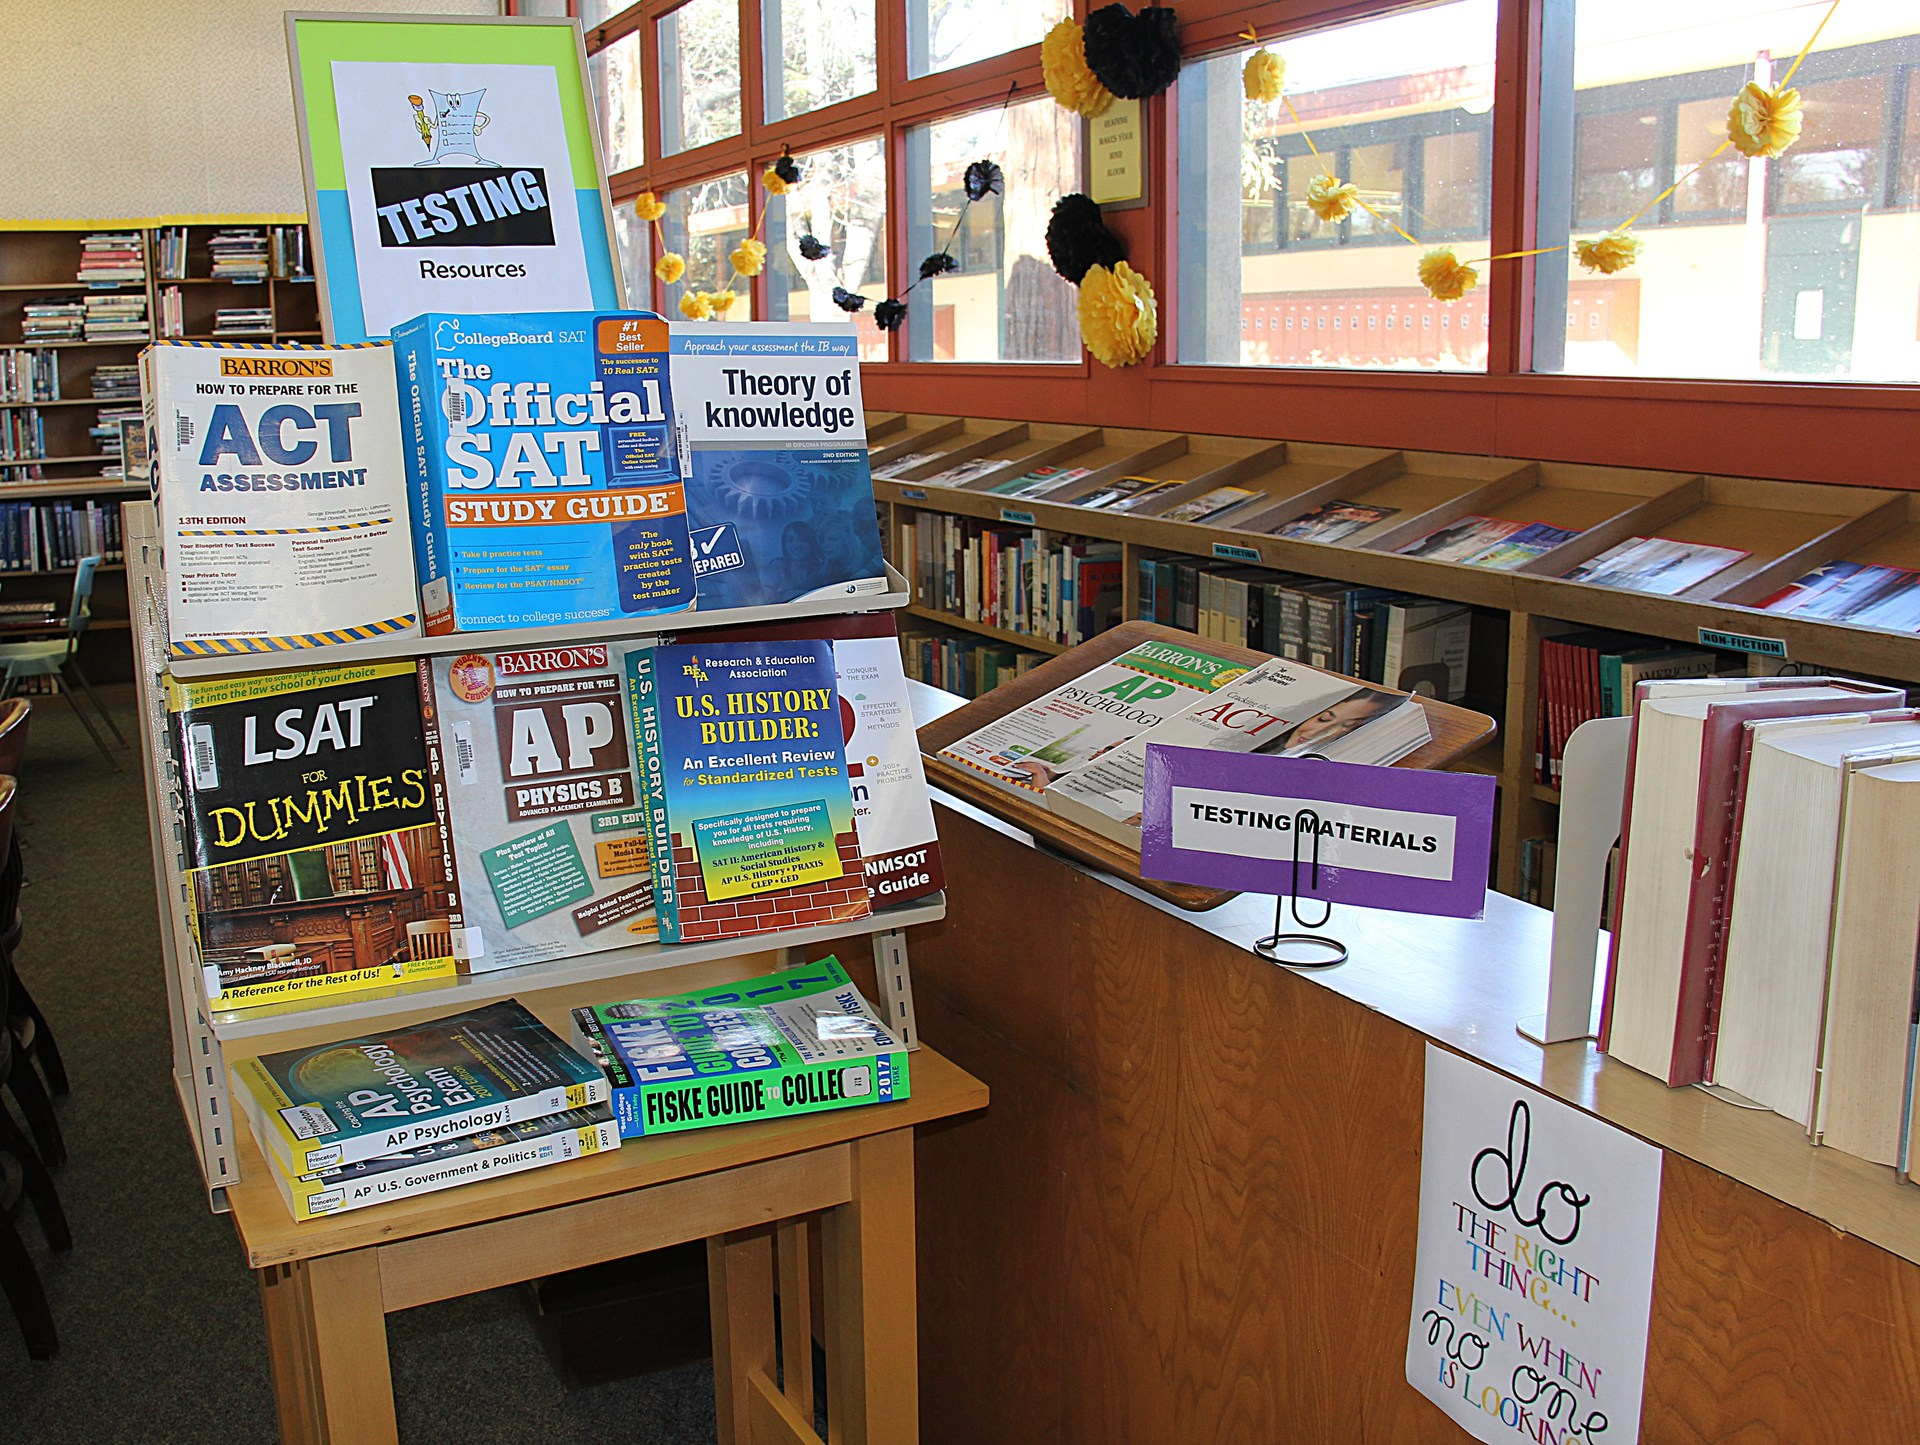 Image of books on Library shelf and easel